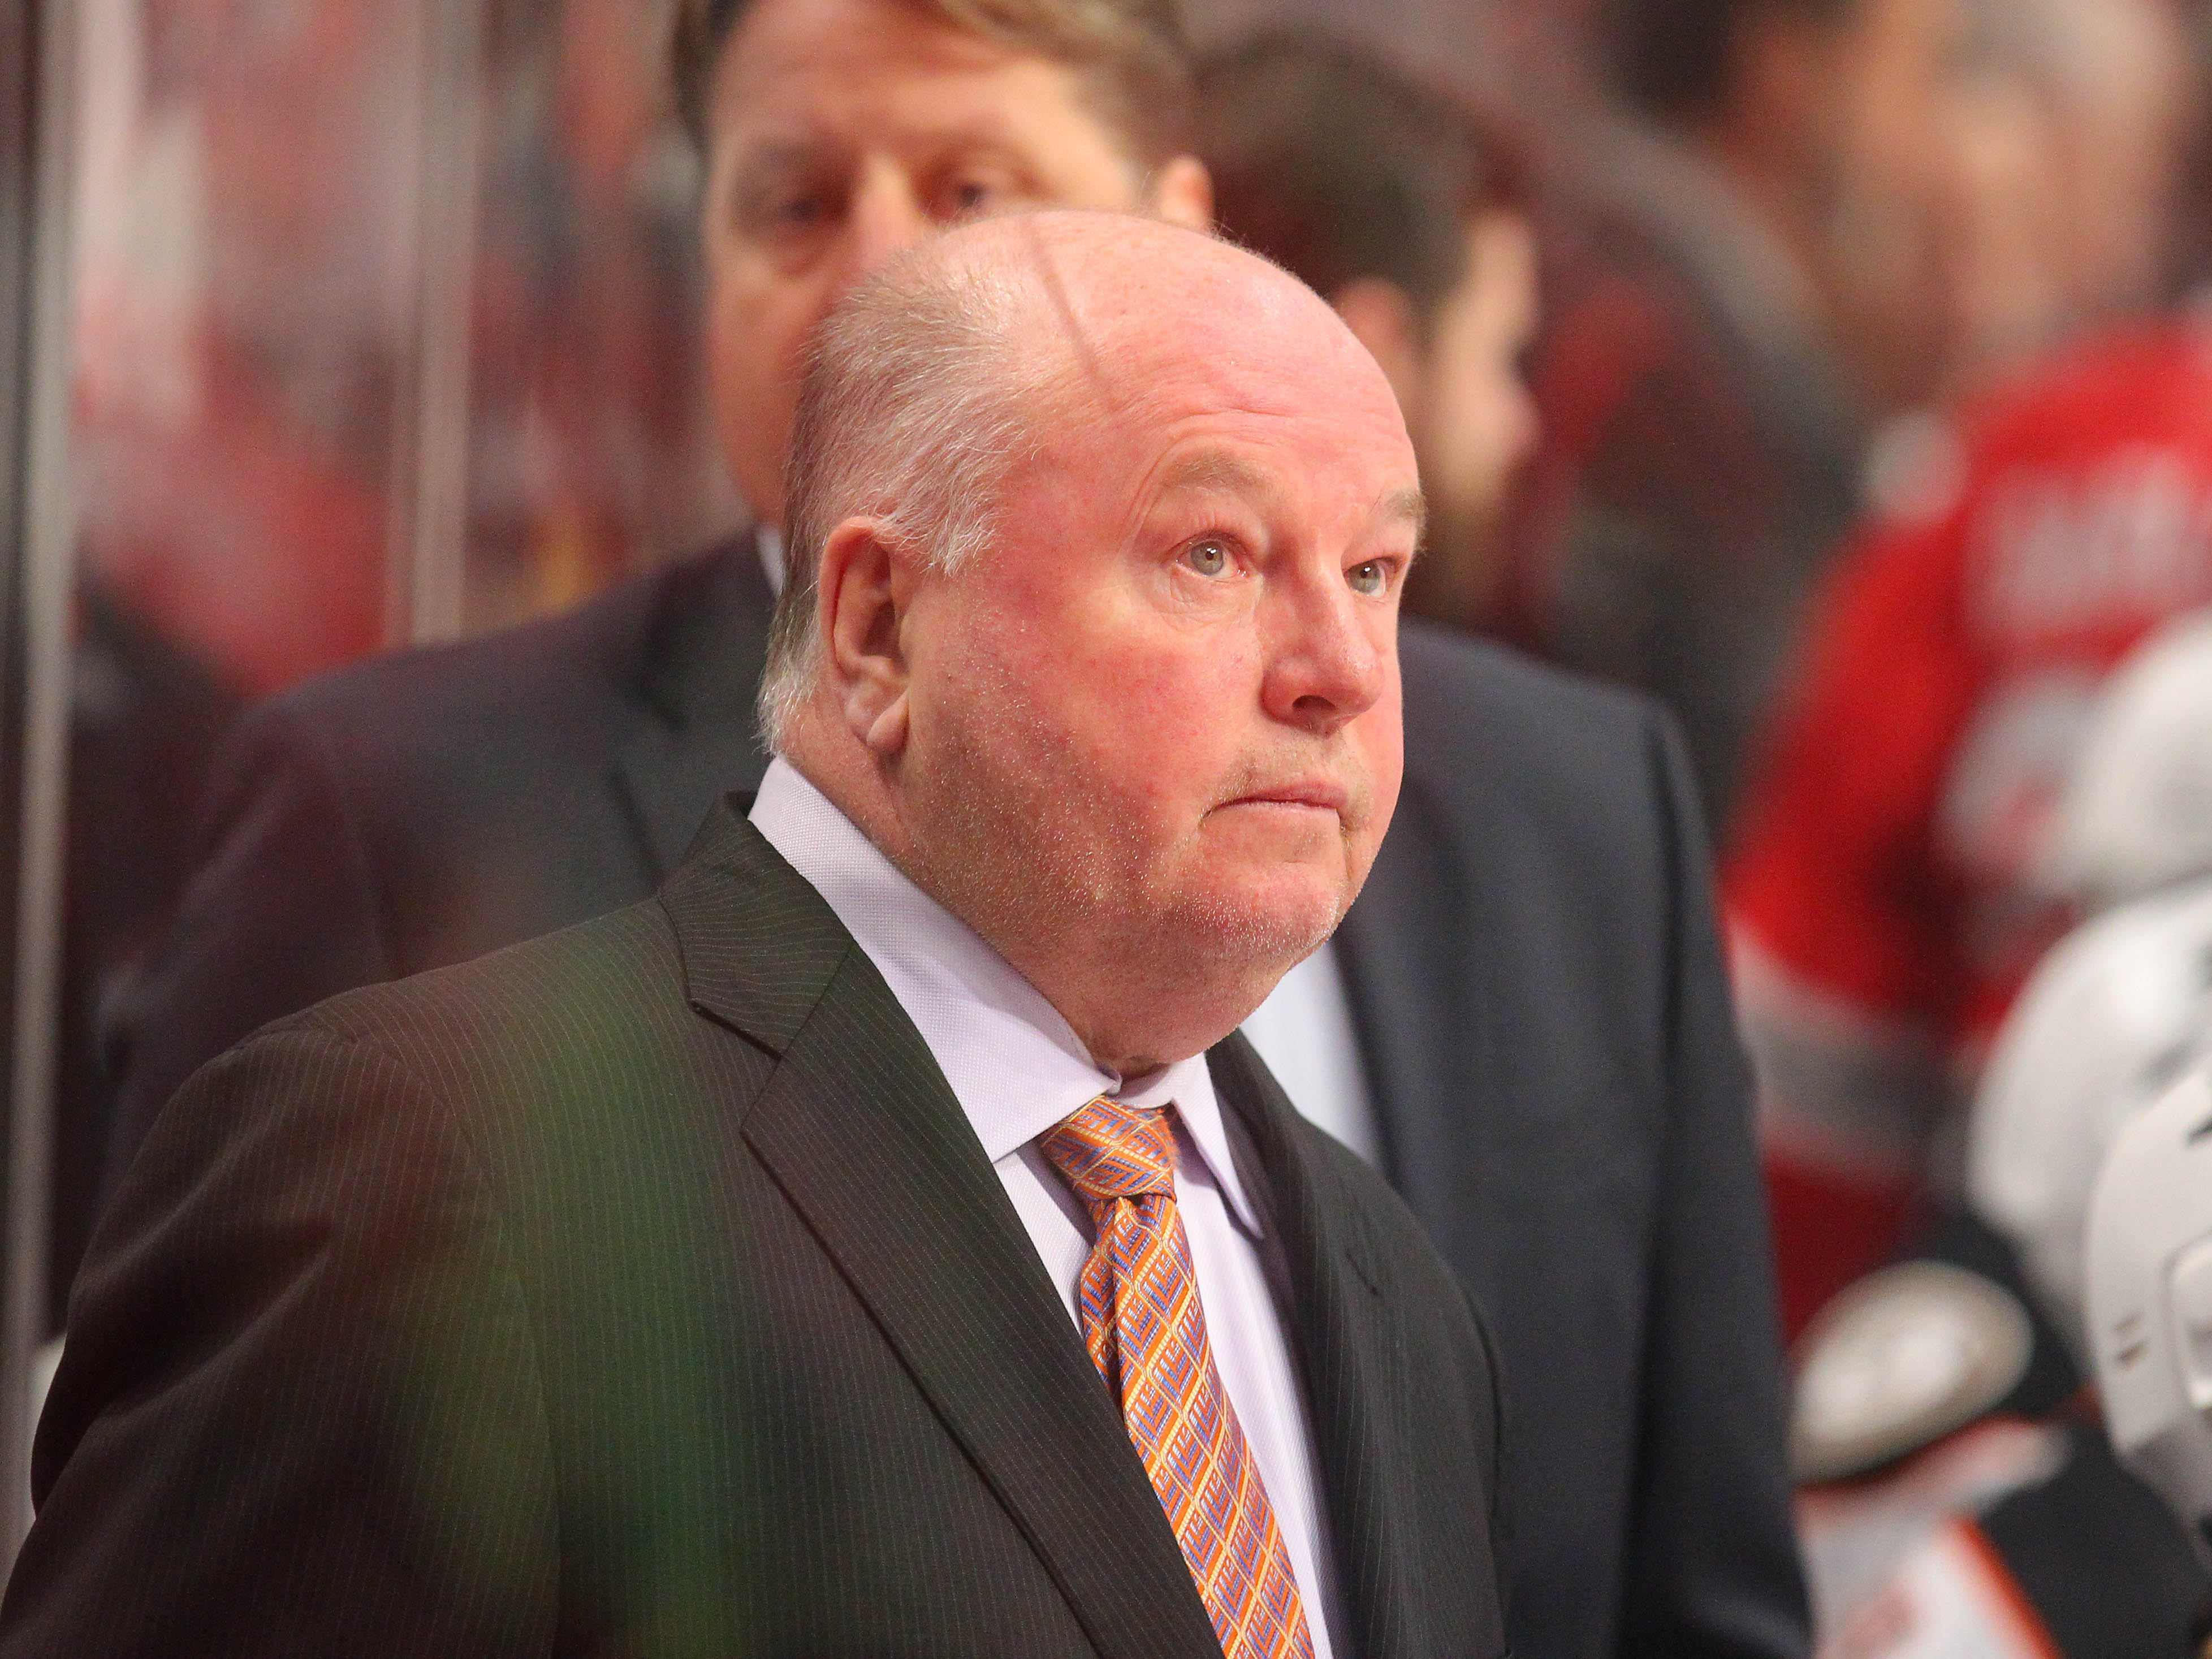 That look when your team loses a Game 6 up 3-2 in the series.